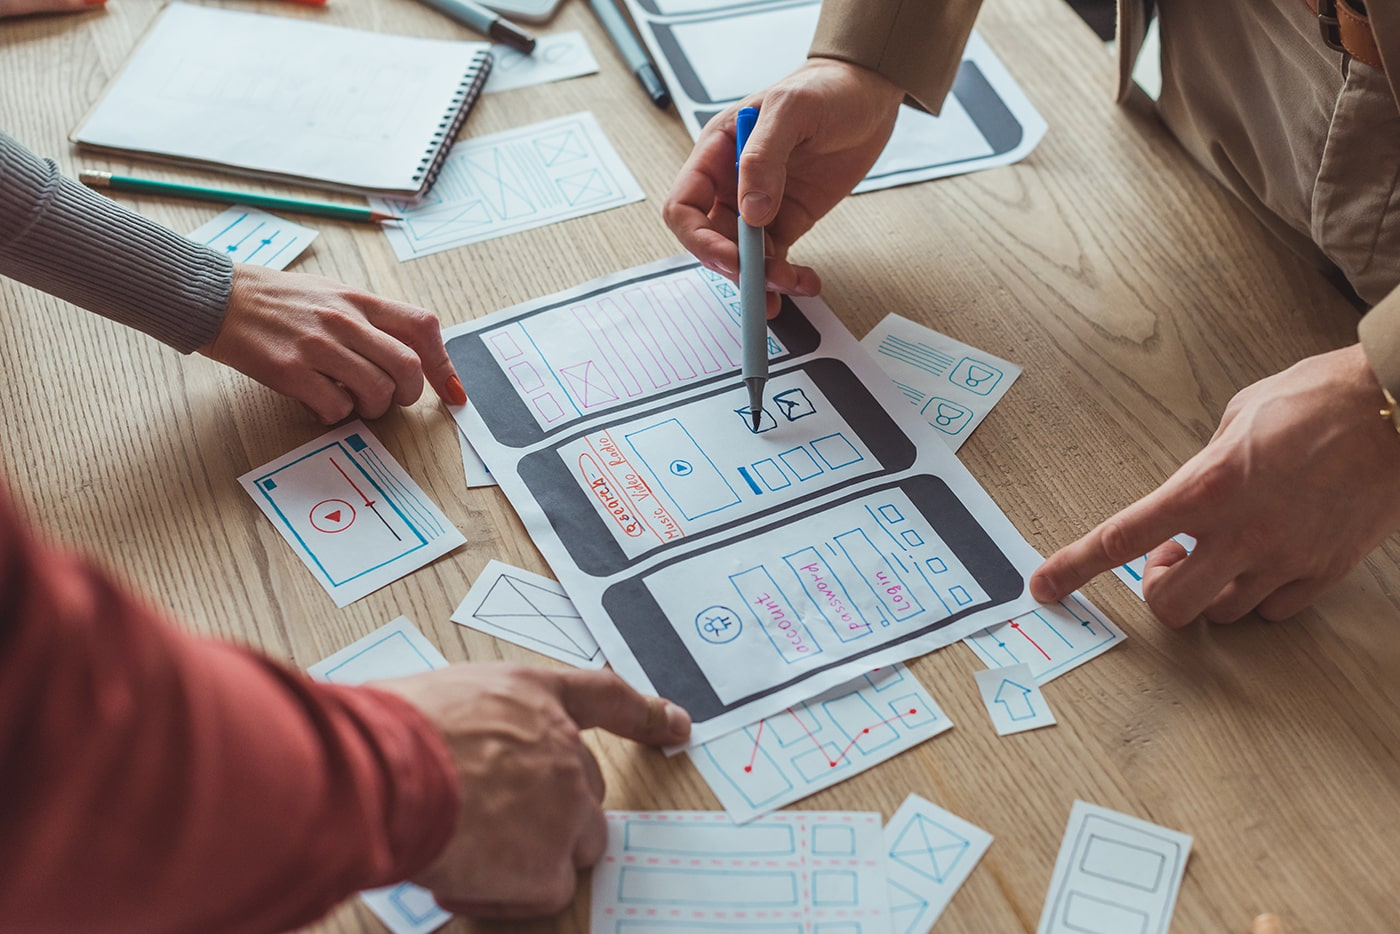 cropped-view-of-designers-working-with-app-sketch